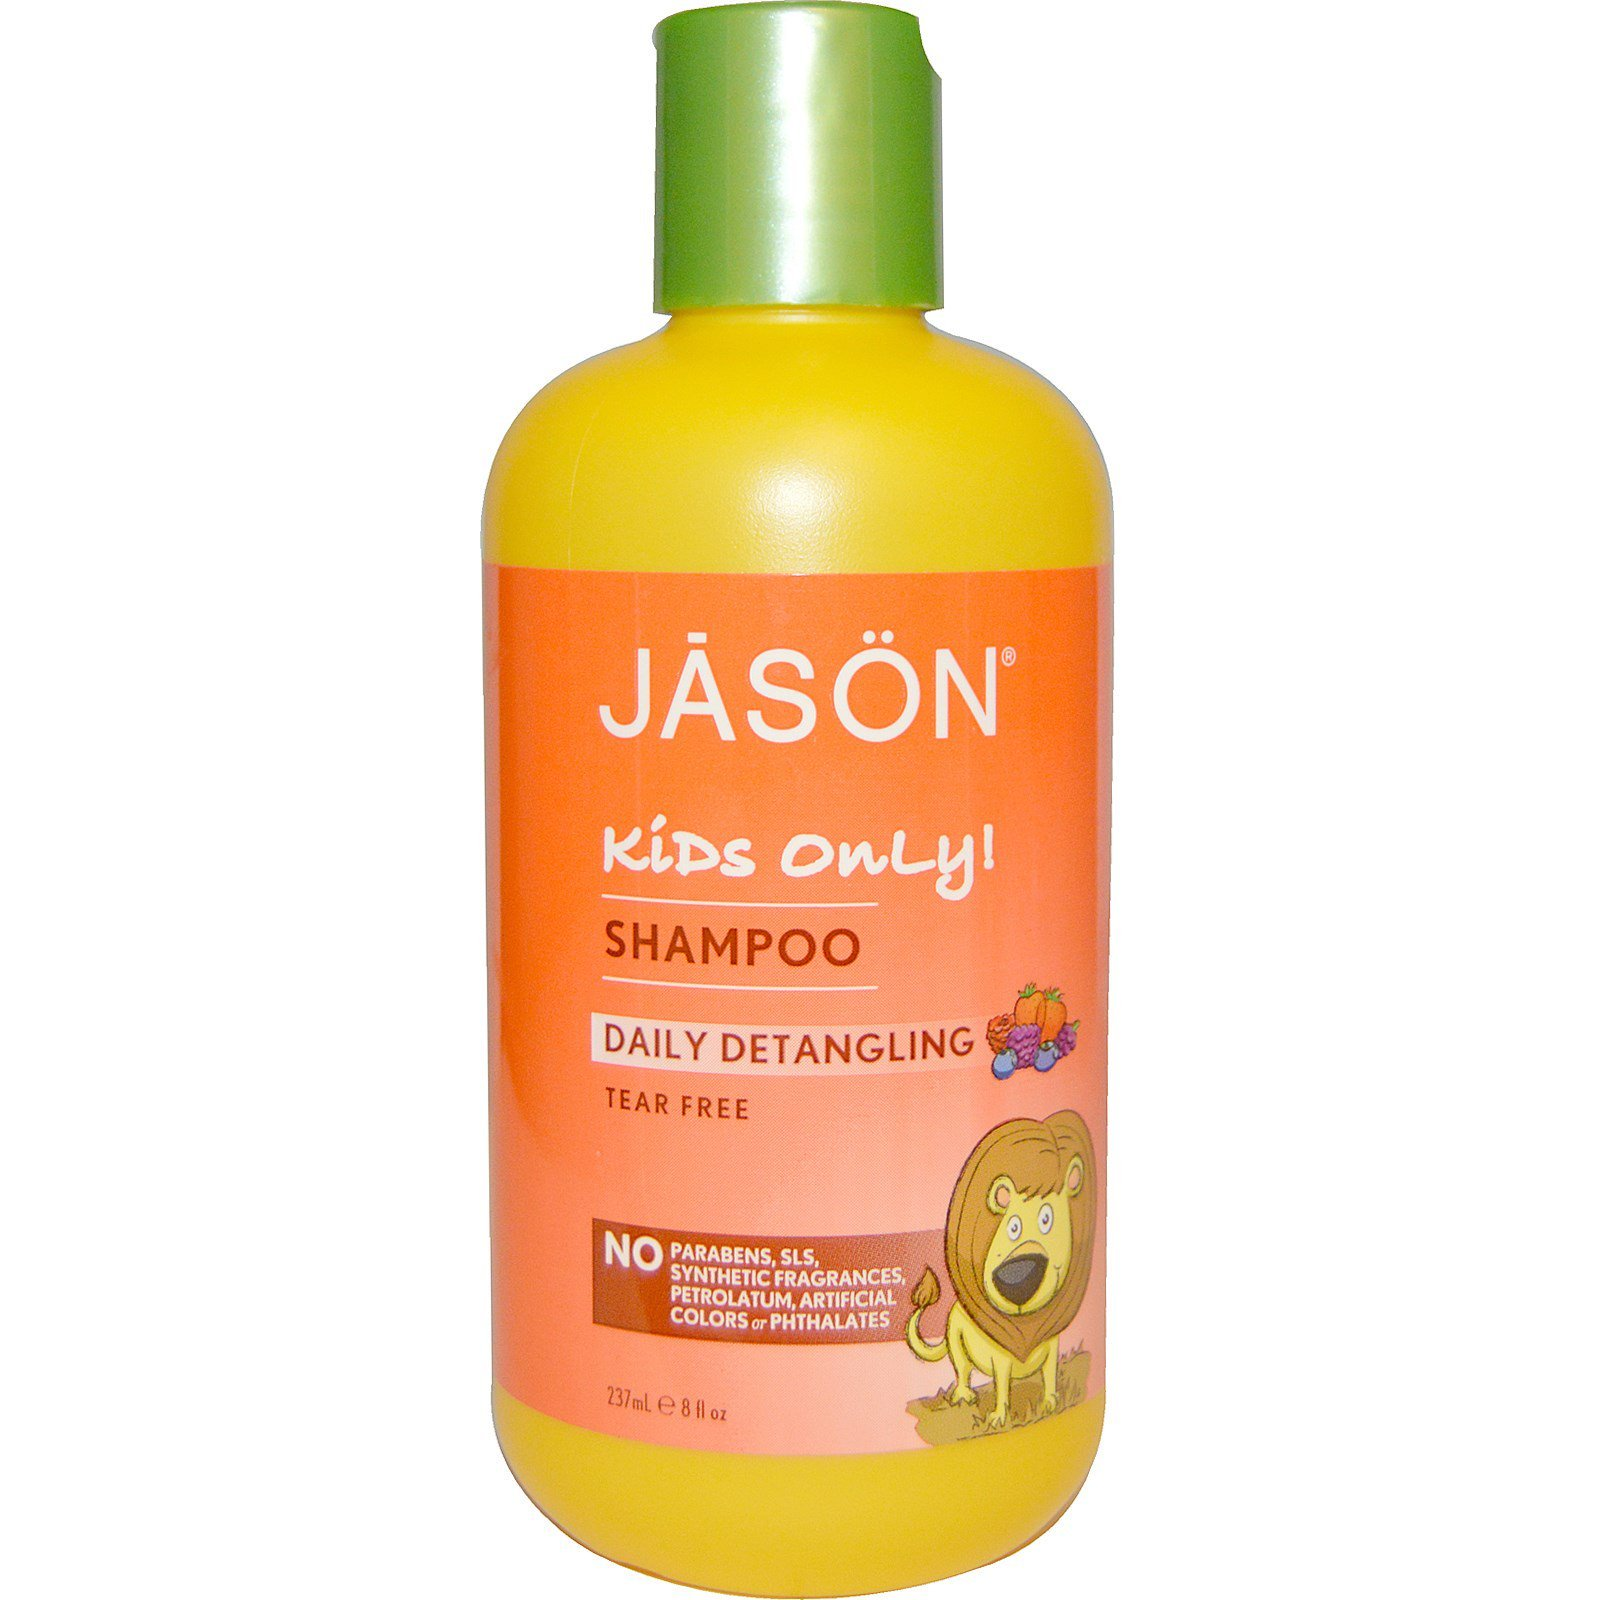 Shampoos & Soaps 6 X Kids No More Knots Shampoo Tear Free Detangler Condition Gentle Orange Scent Hair Care & Styling